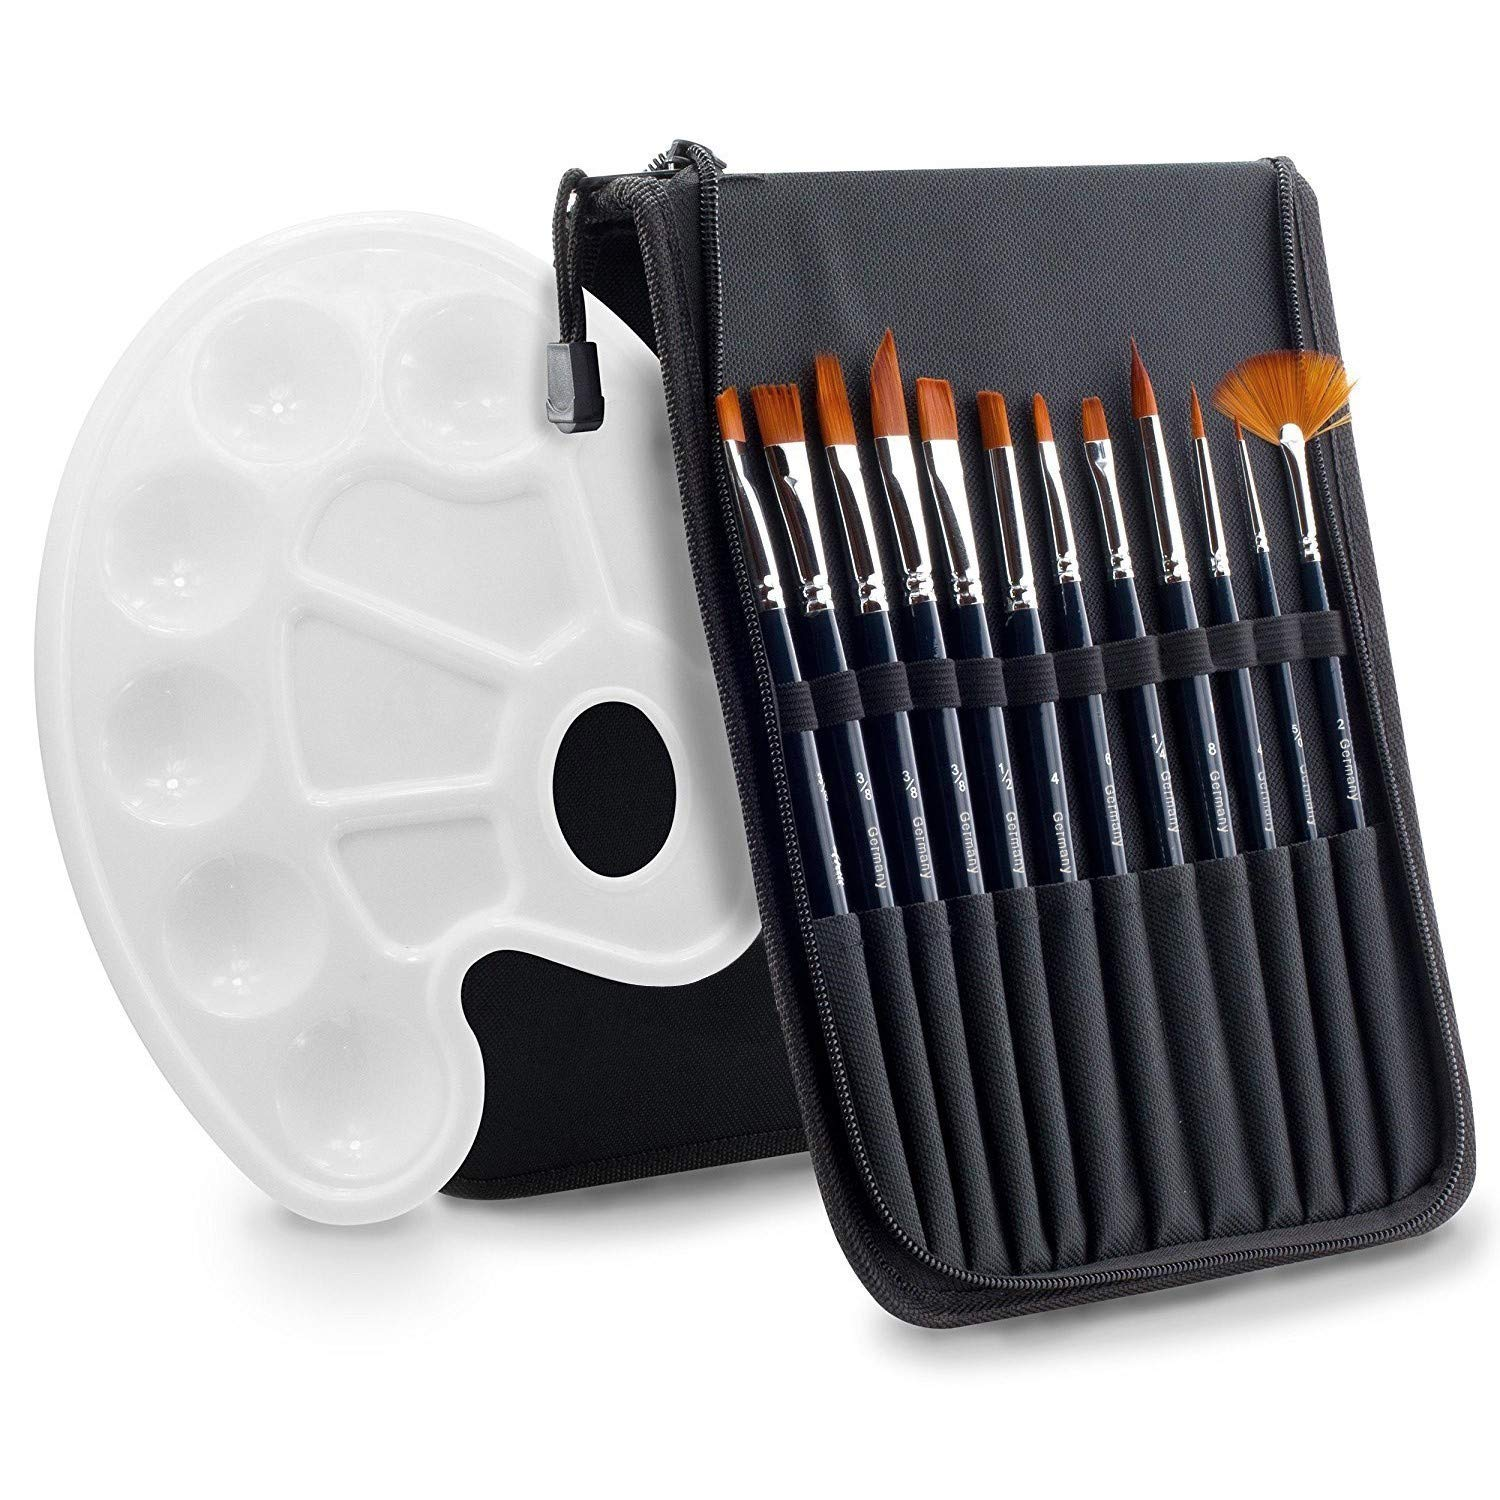 Art Paint Brushes Set 12 Pieces - AMAGIC Nylon Professional Watercolor Brushes for Acrylic Oil Painting with 1 Bonus Free Paint Tray Palette (Black) by Amagic